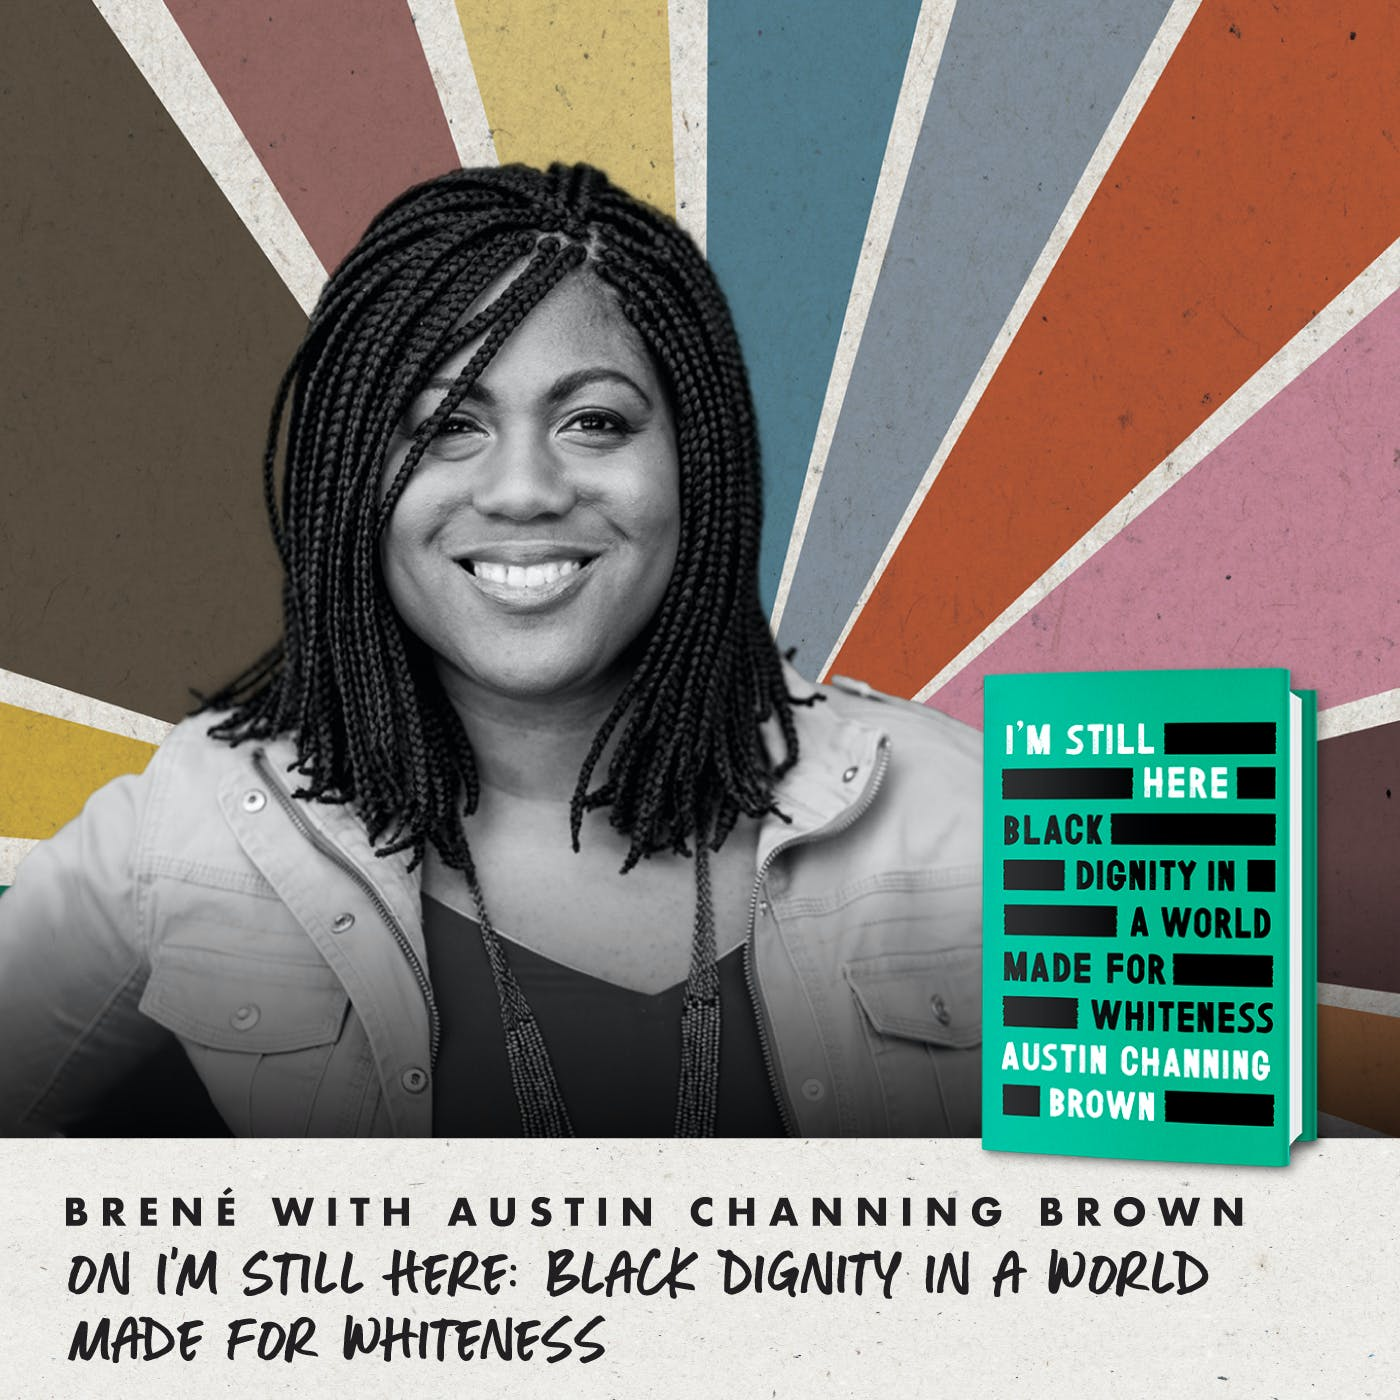 Brené with Austin Channing Brown on I'm Still Here: Black Dignity in a World Made for Whiteness